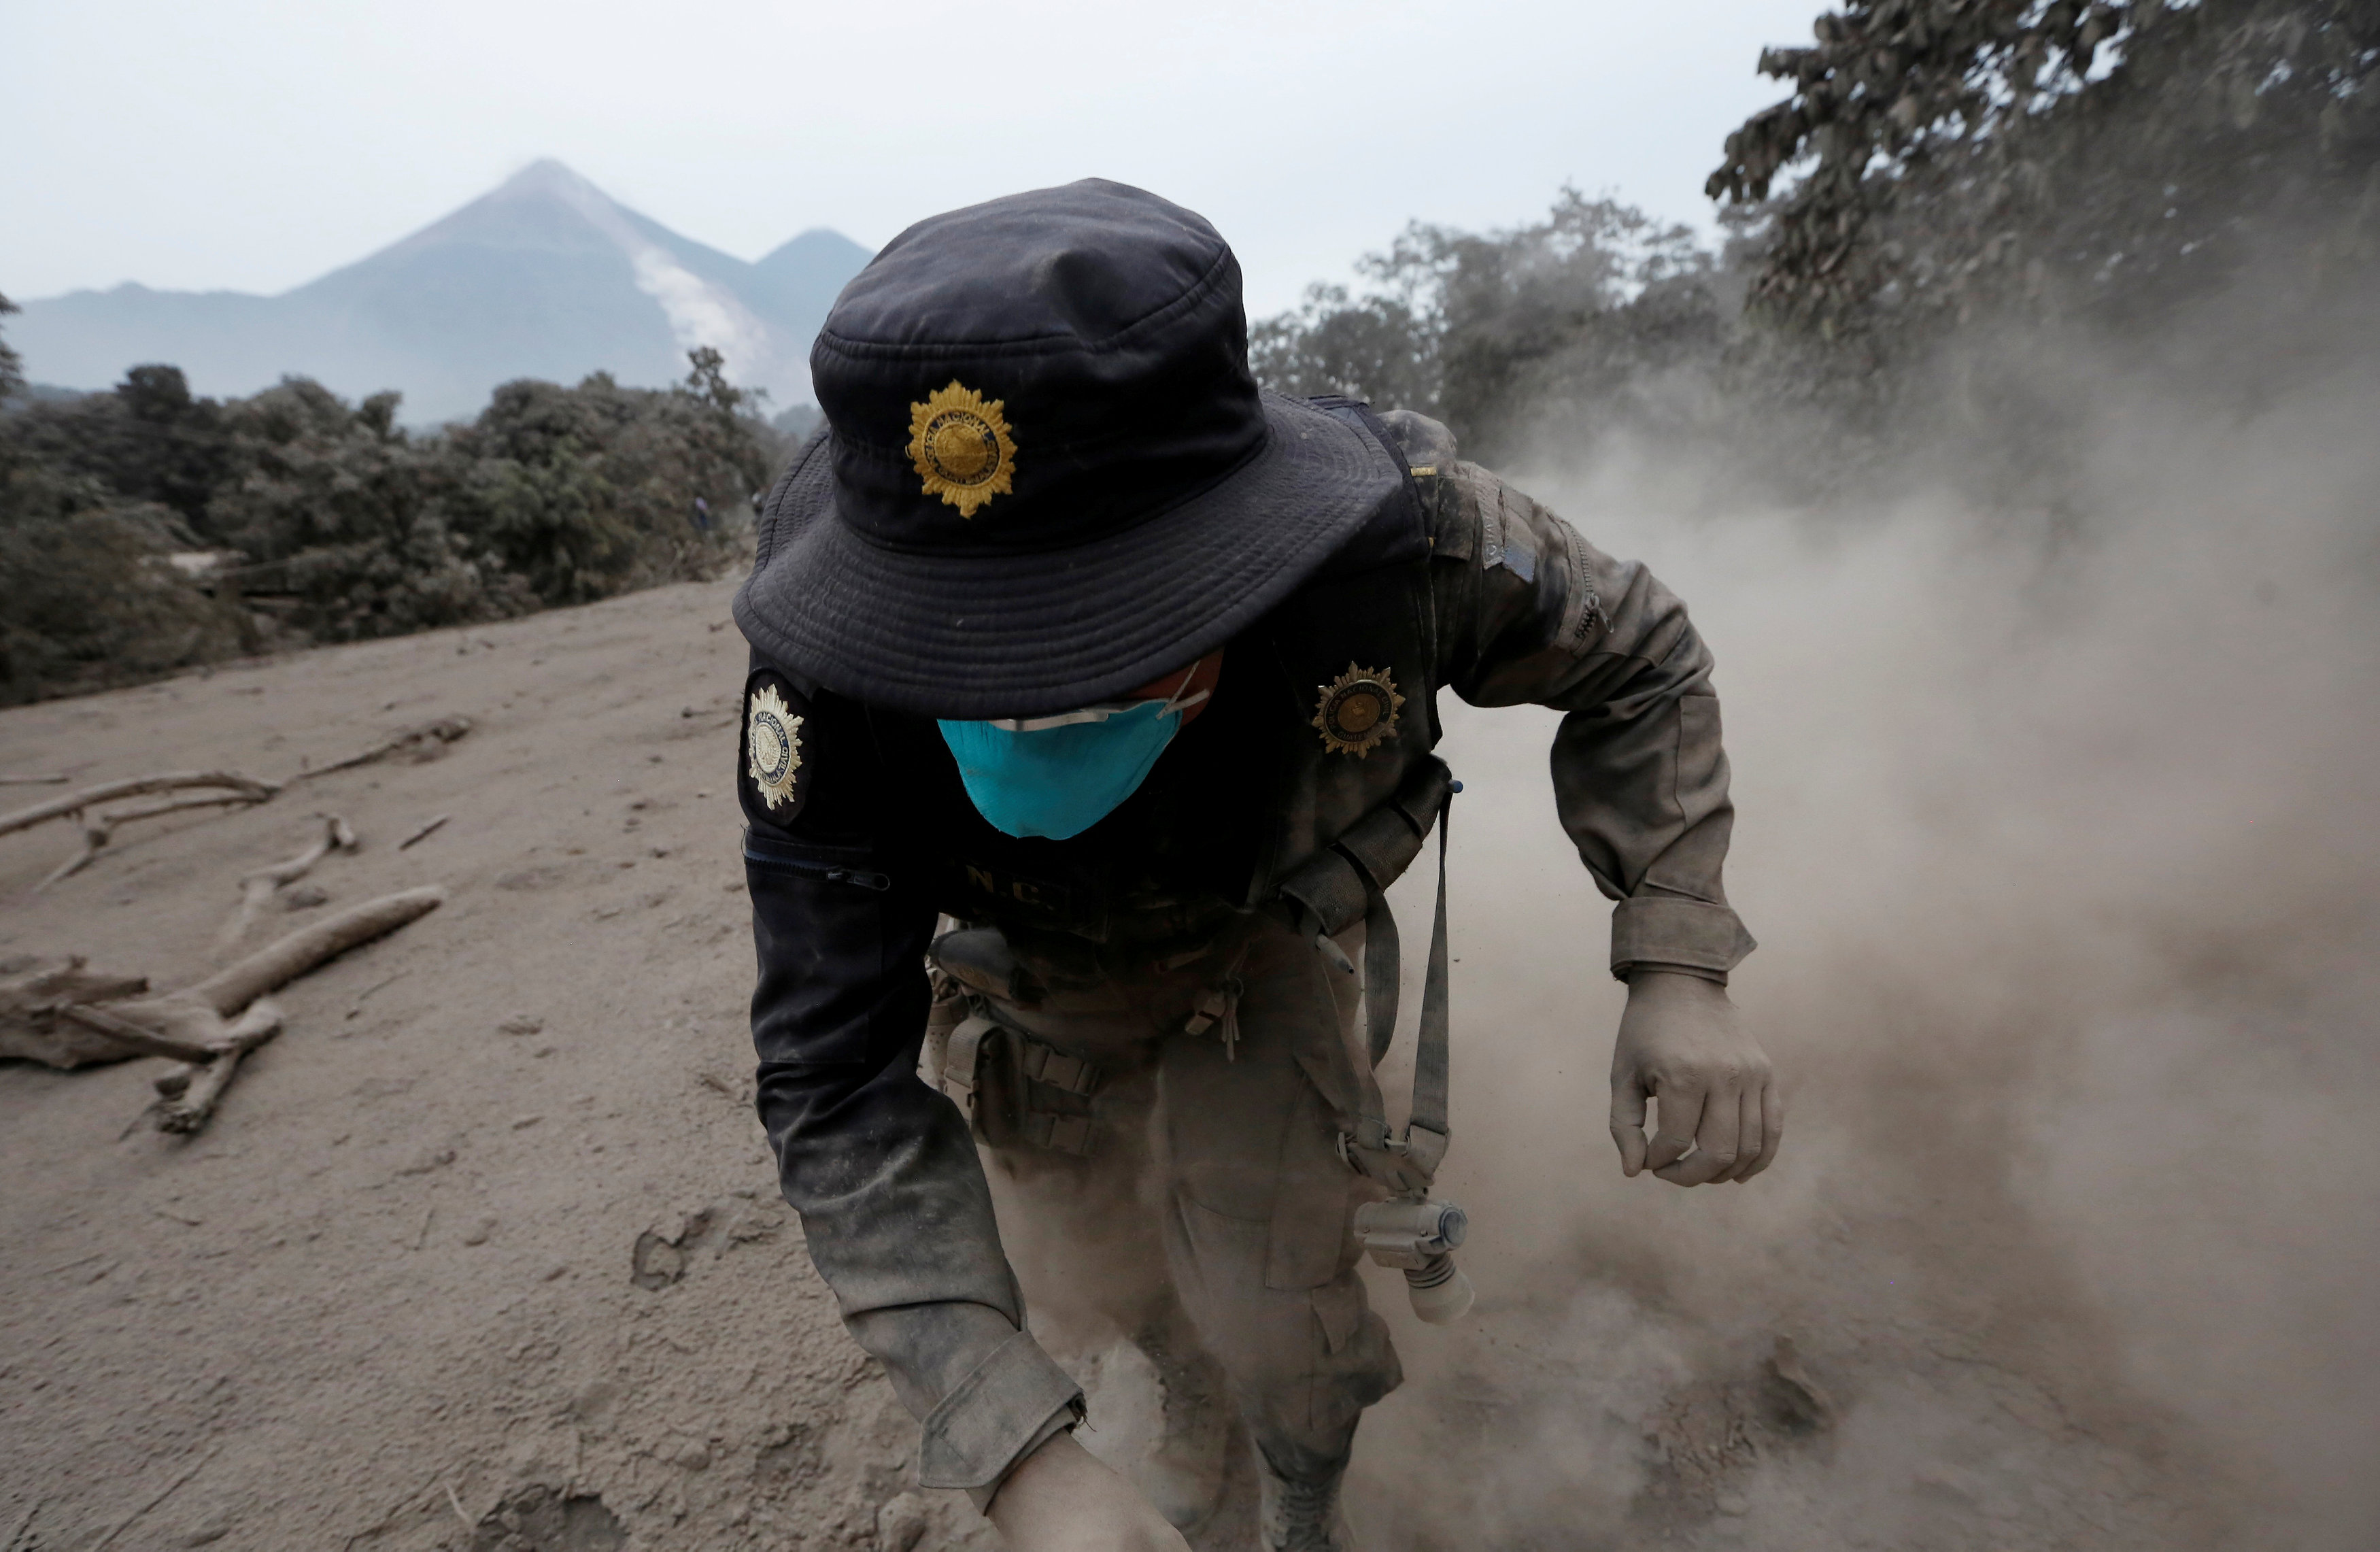 A police officer stumbles while running away after the Fuego volcano spew new pyroclastic flow in the community of San Miguel Los Lotes in Escuintla, Guatemala, June 4, 2018. REUTERS/Luis Echeverria